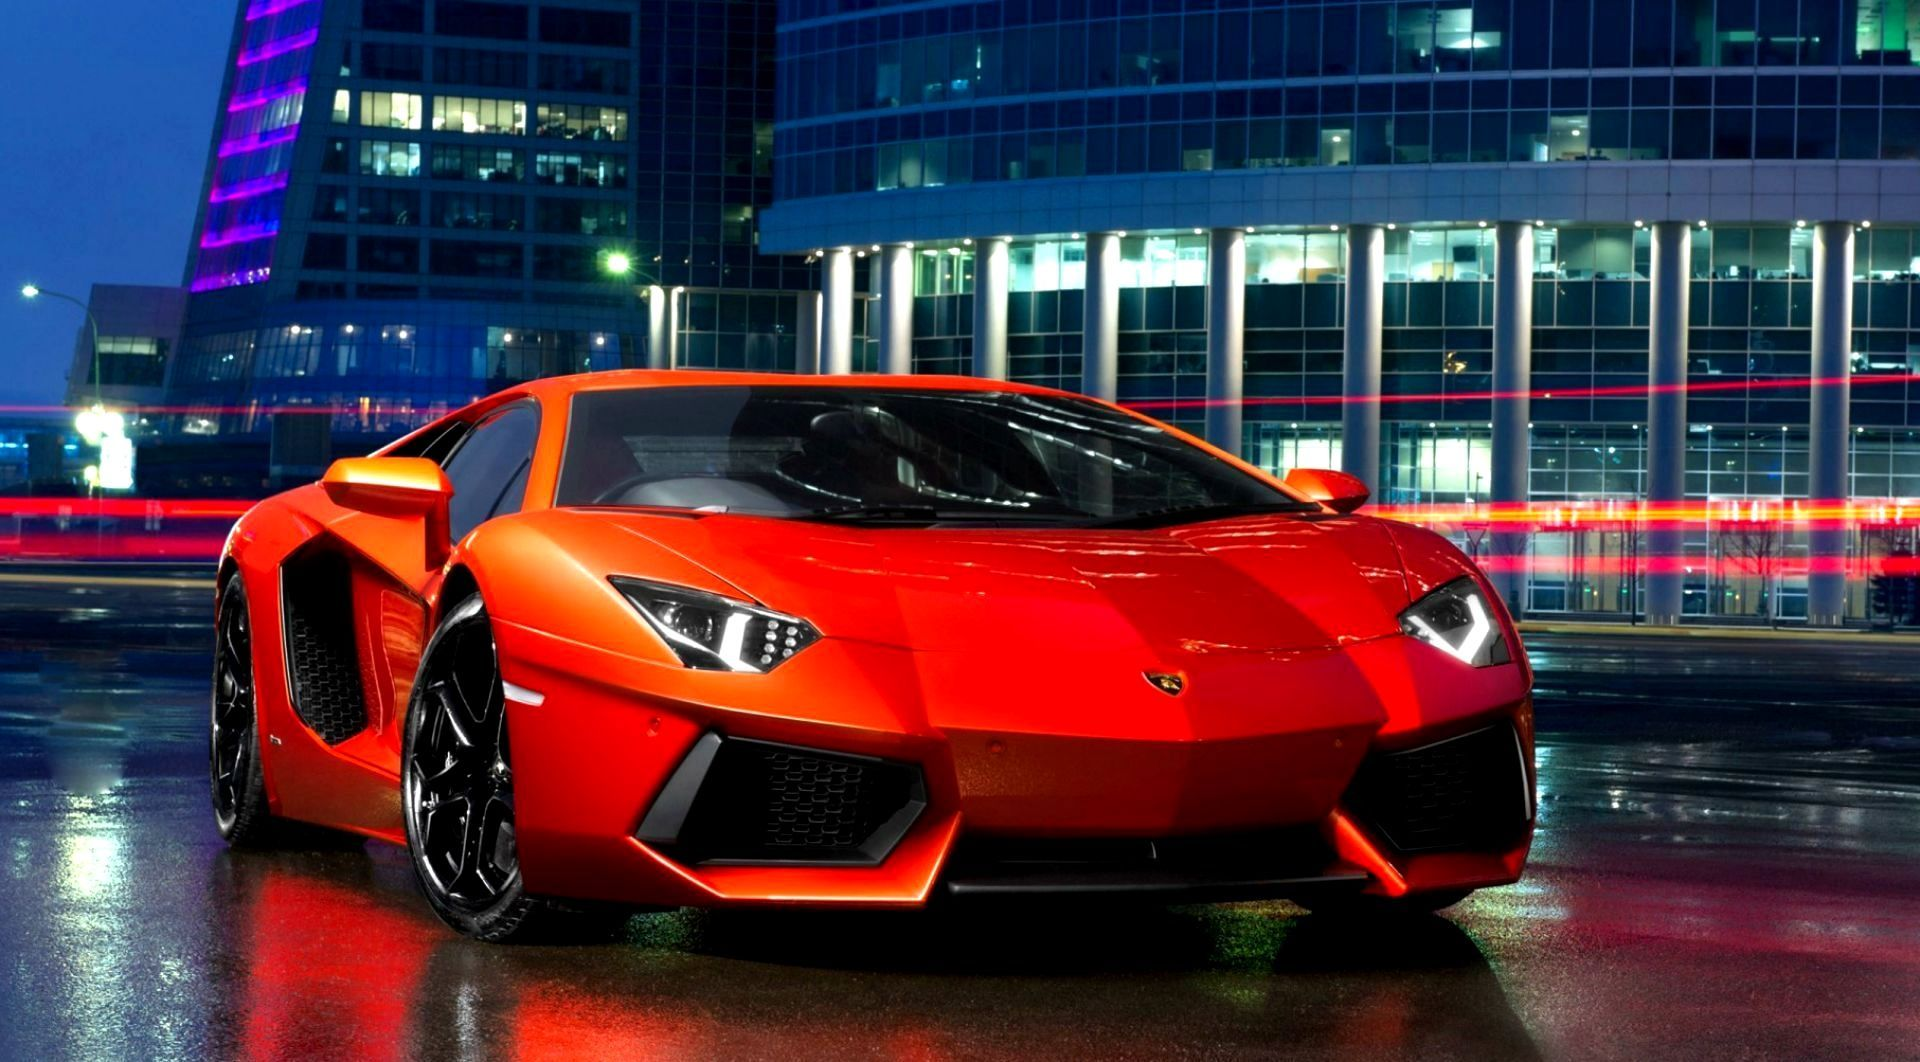 4k Wallpaper For Pc Of Cars Trick In 2020 Wallpaper Pc Car Wallpapers Amazing Cars